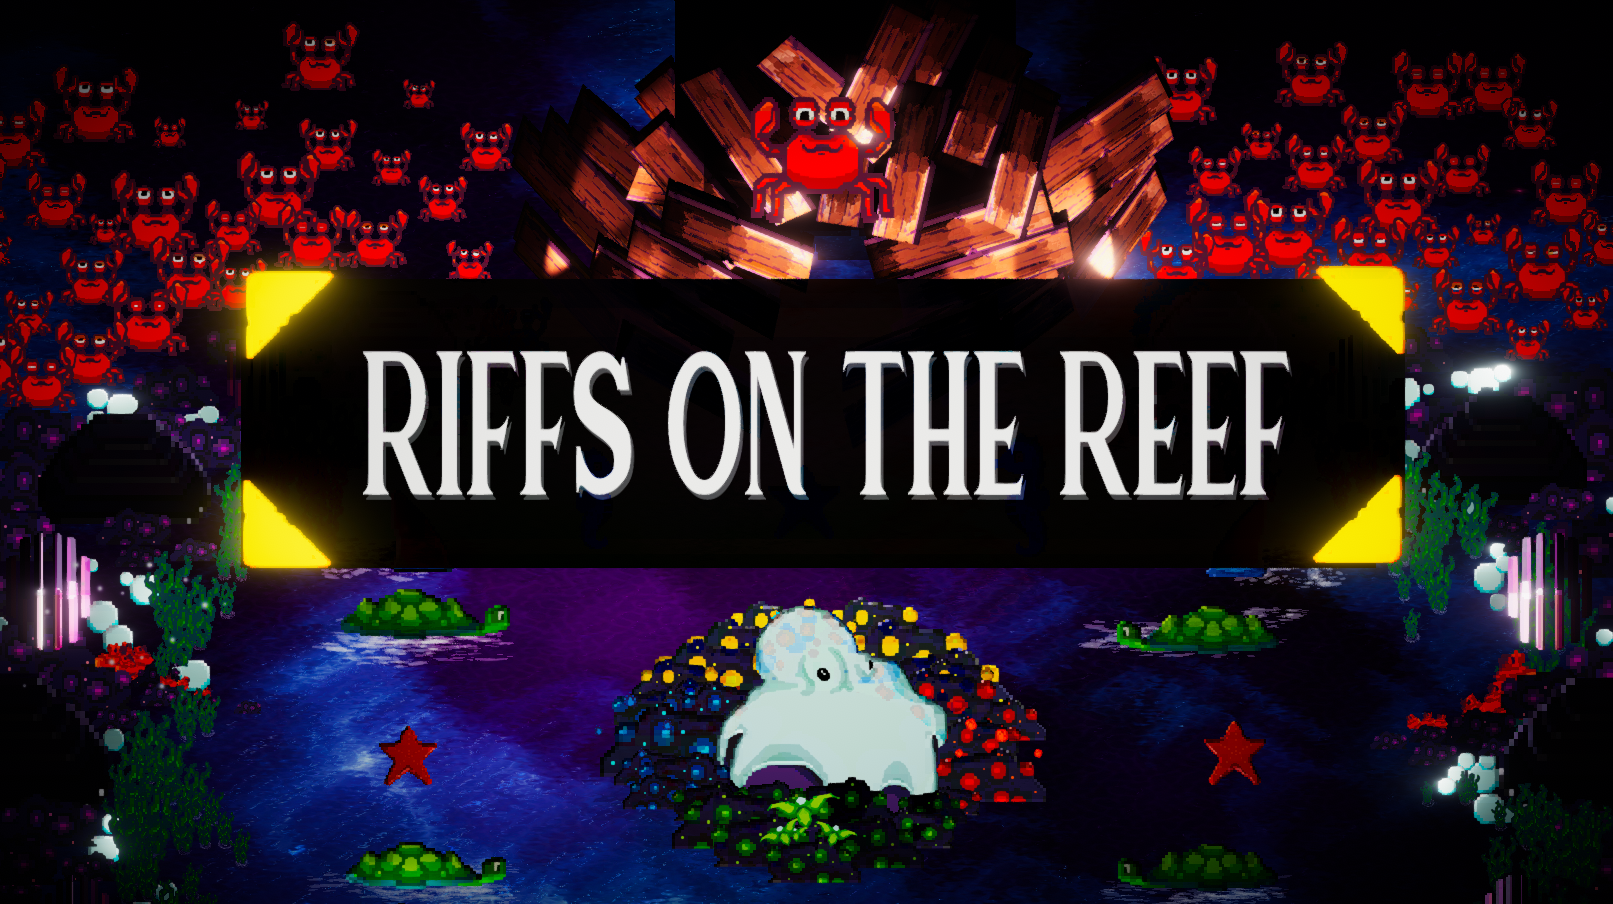 Riffs On The Reef   Squidmon Cowell's annual competition is here again! Perform to prove you're the one that can put the motion in the ocean and the wriggle in the reef! Make some waves with your tunes to earn the grand prize hidden within the Chest of Unforeseen Fortunes!